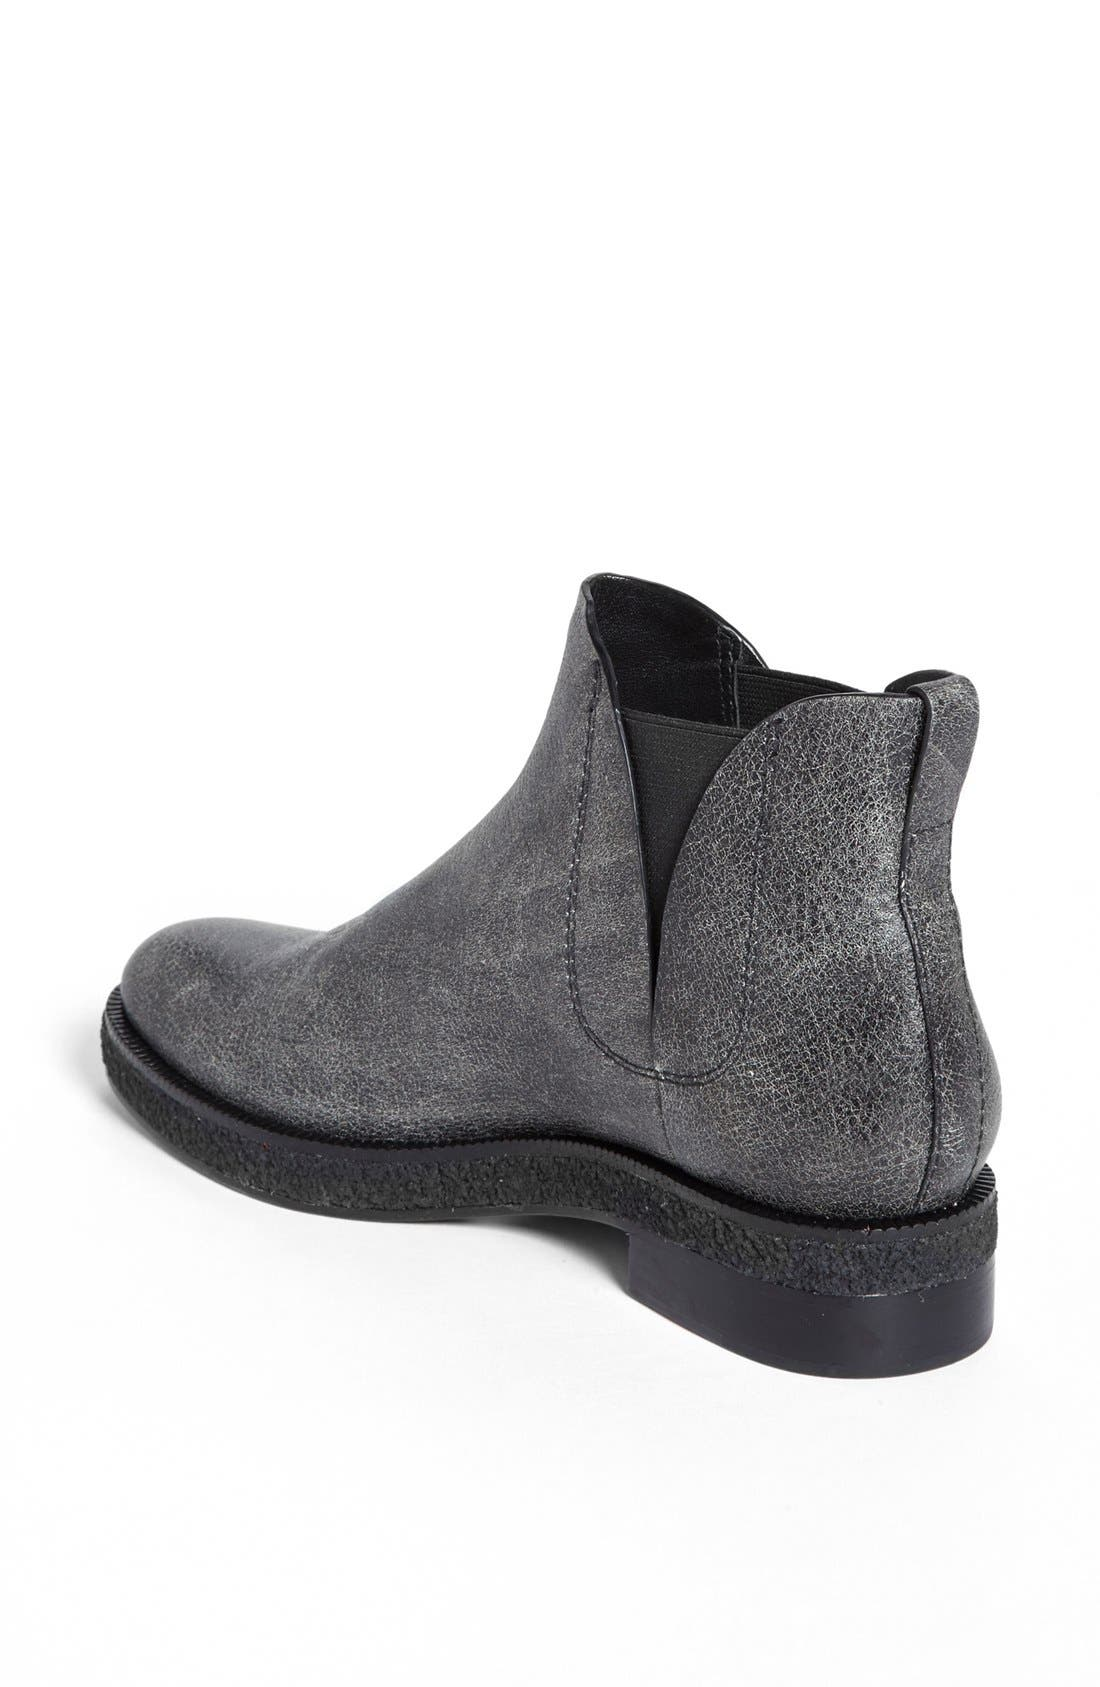 Alternate Image 2  - Alexander Wang 'Dewi Chelsea' Boot